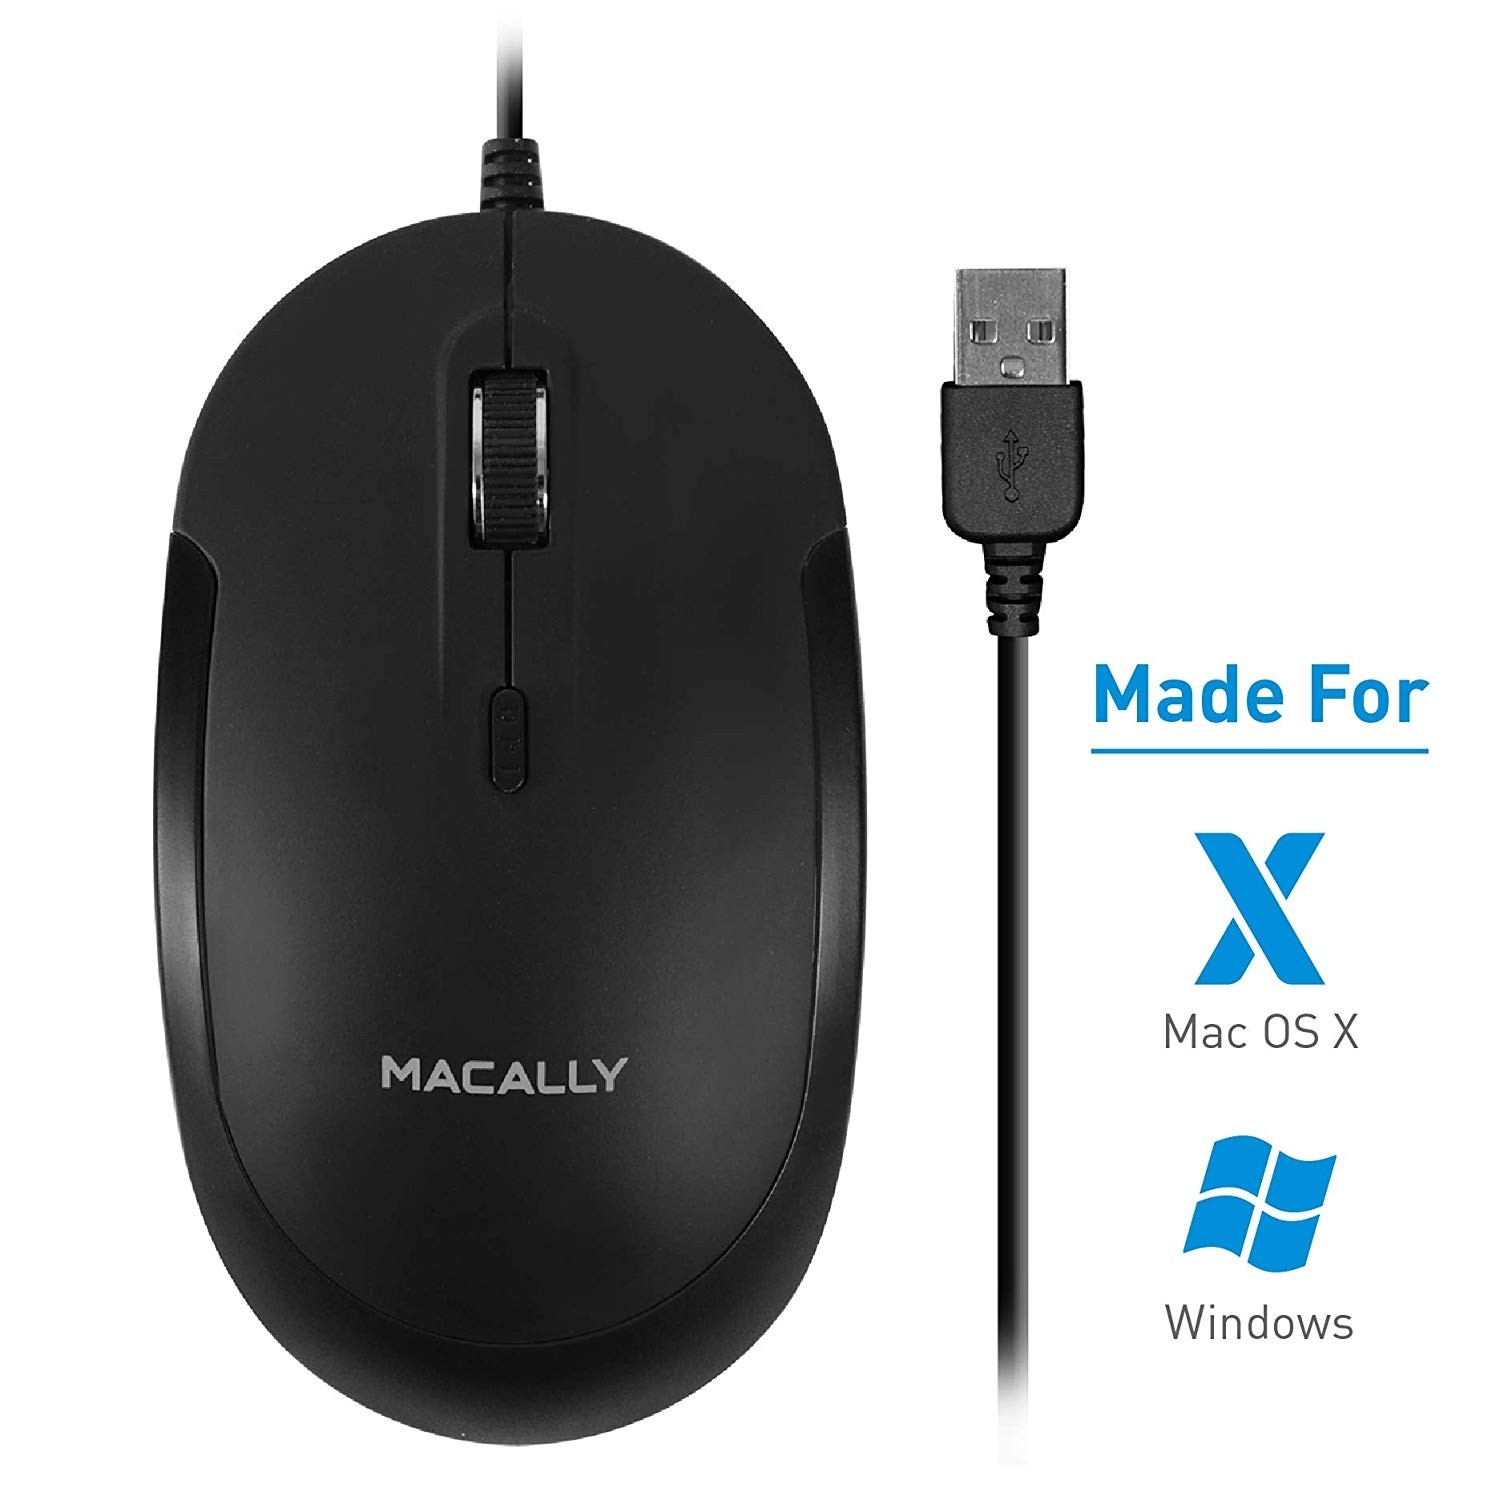 Macally Silent USB Mouse Wired for Apple Mac or Windows, Slim & Compact Mice Design with Optical Sensor and DPI Switch 800/1200/1600/2400, Small for Easy Travel  - Black, DYNAMOUSEB